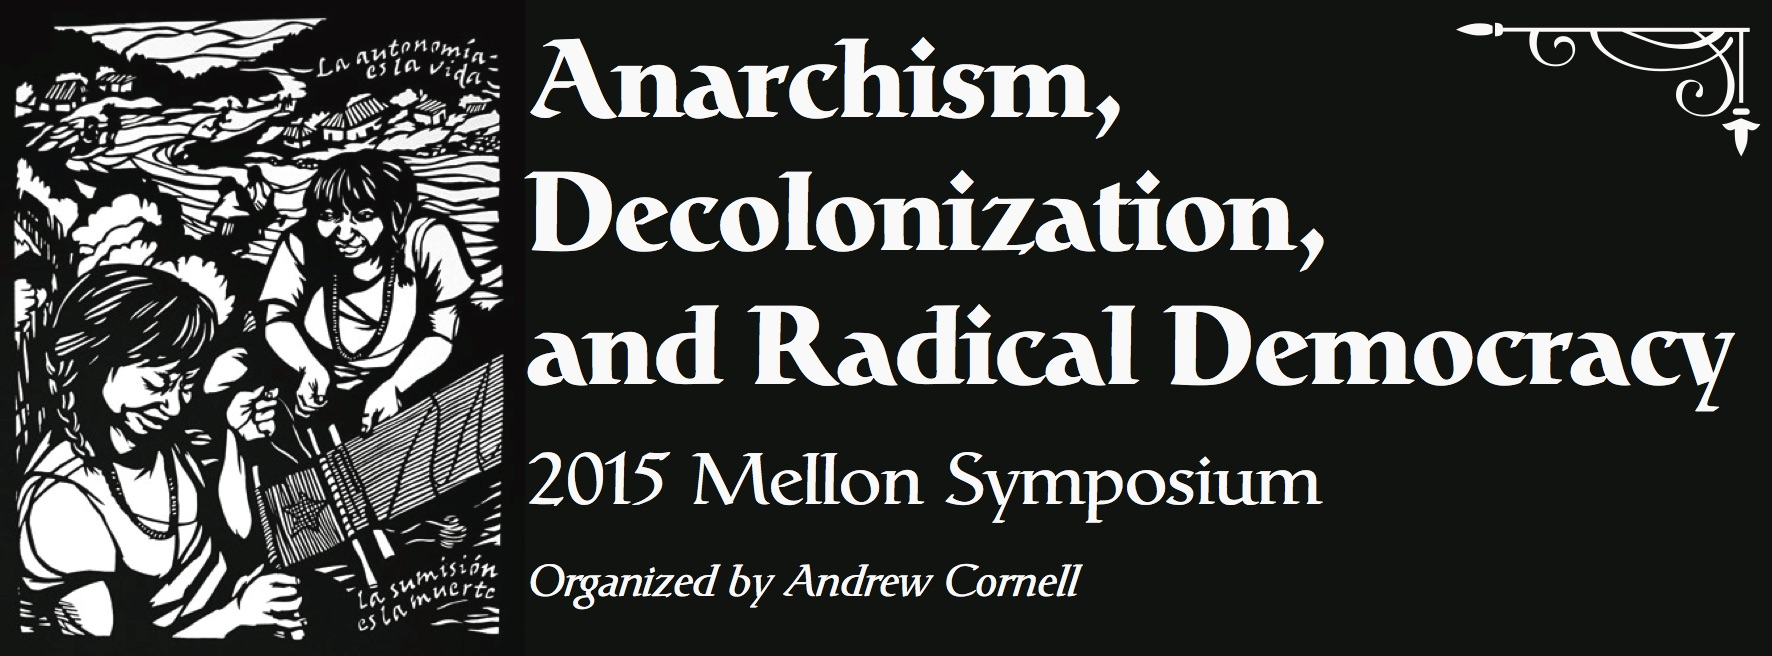 Anarchism, Decolonization, and Radical Democracy